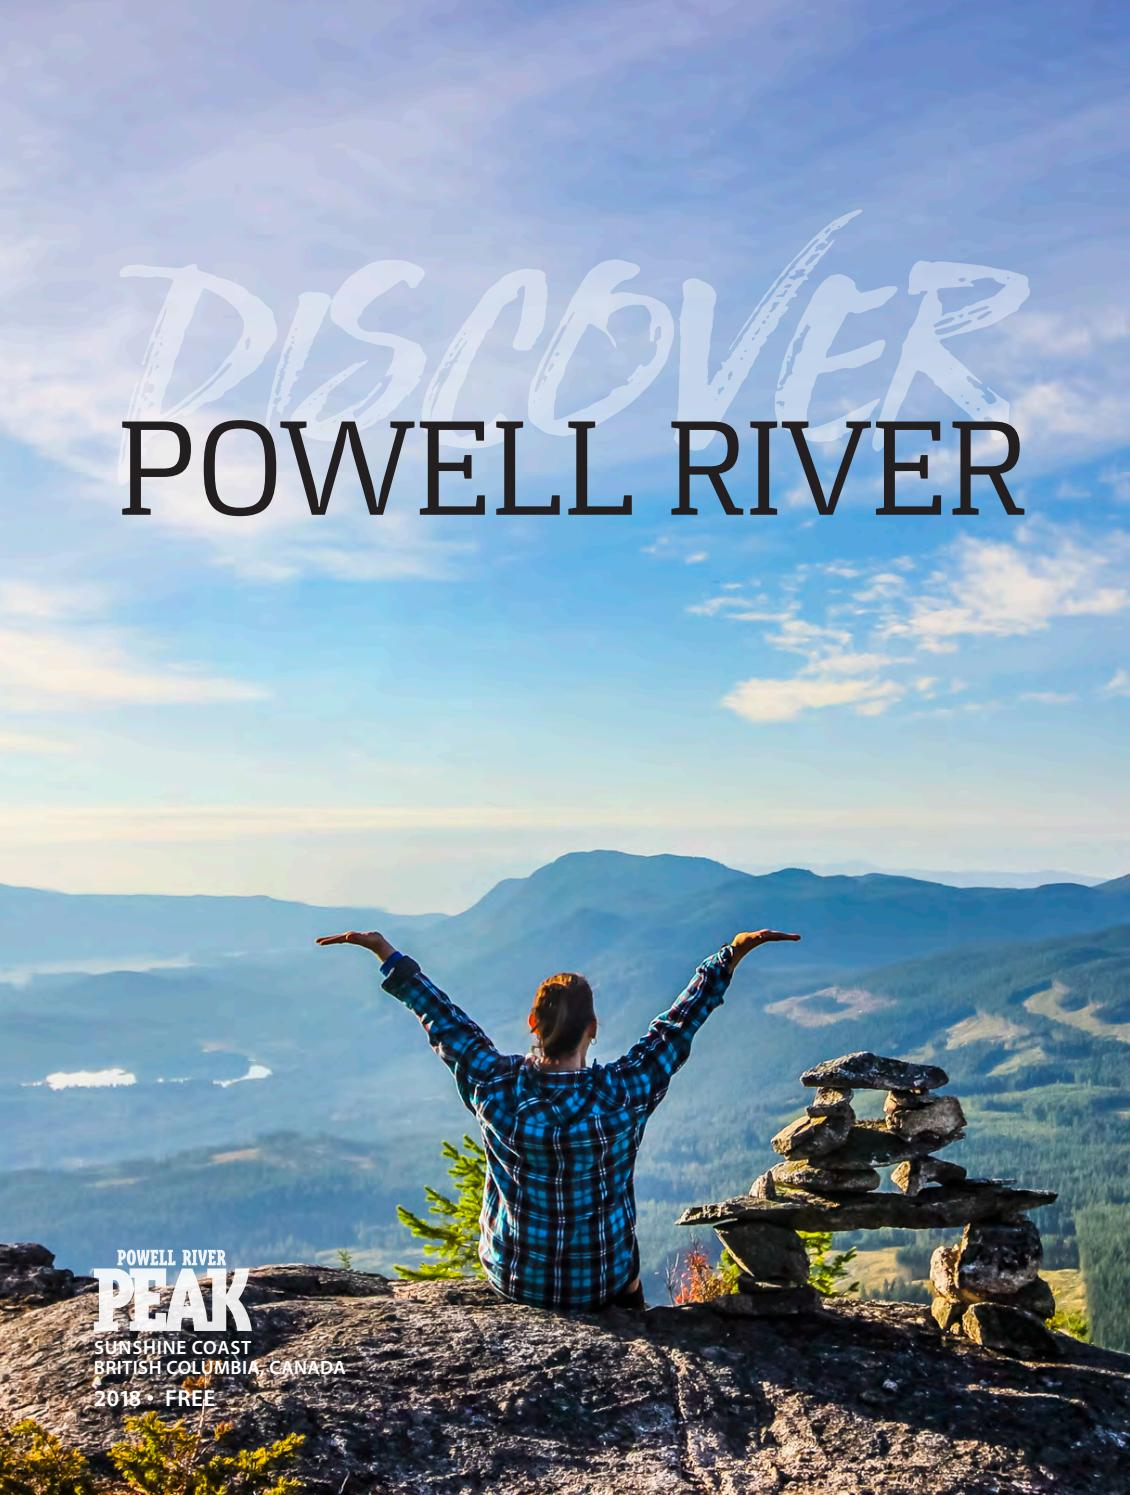 powell river divorced singles Find powell river real estate listings and browse homes for sale at royal lepage, canada's leading real estate brokerage.